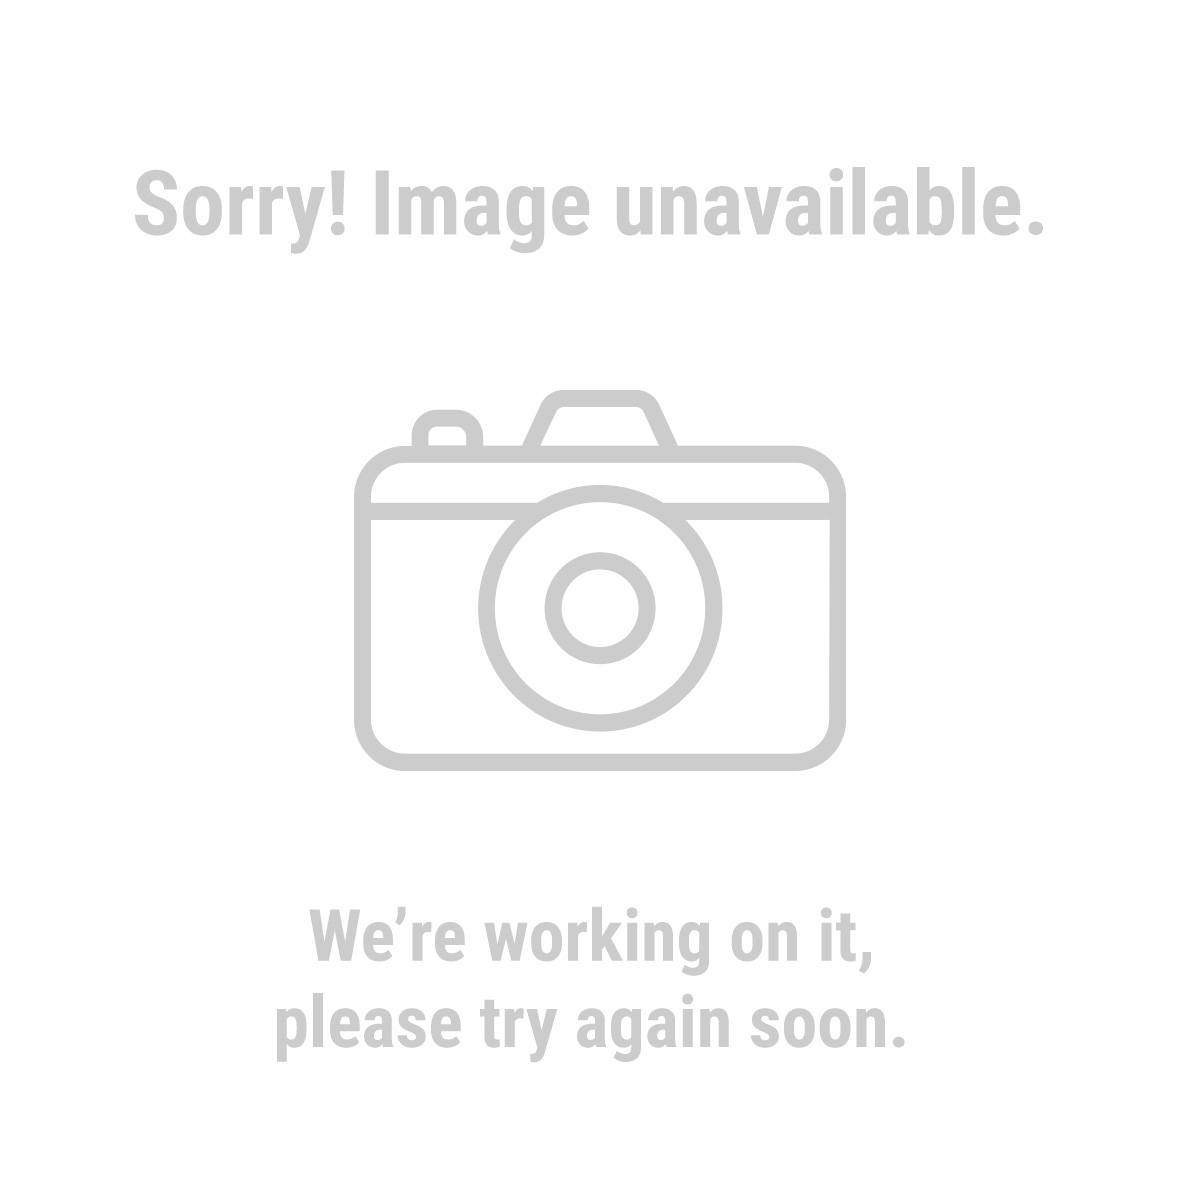 volt inverter arc tig welder digital readout